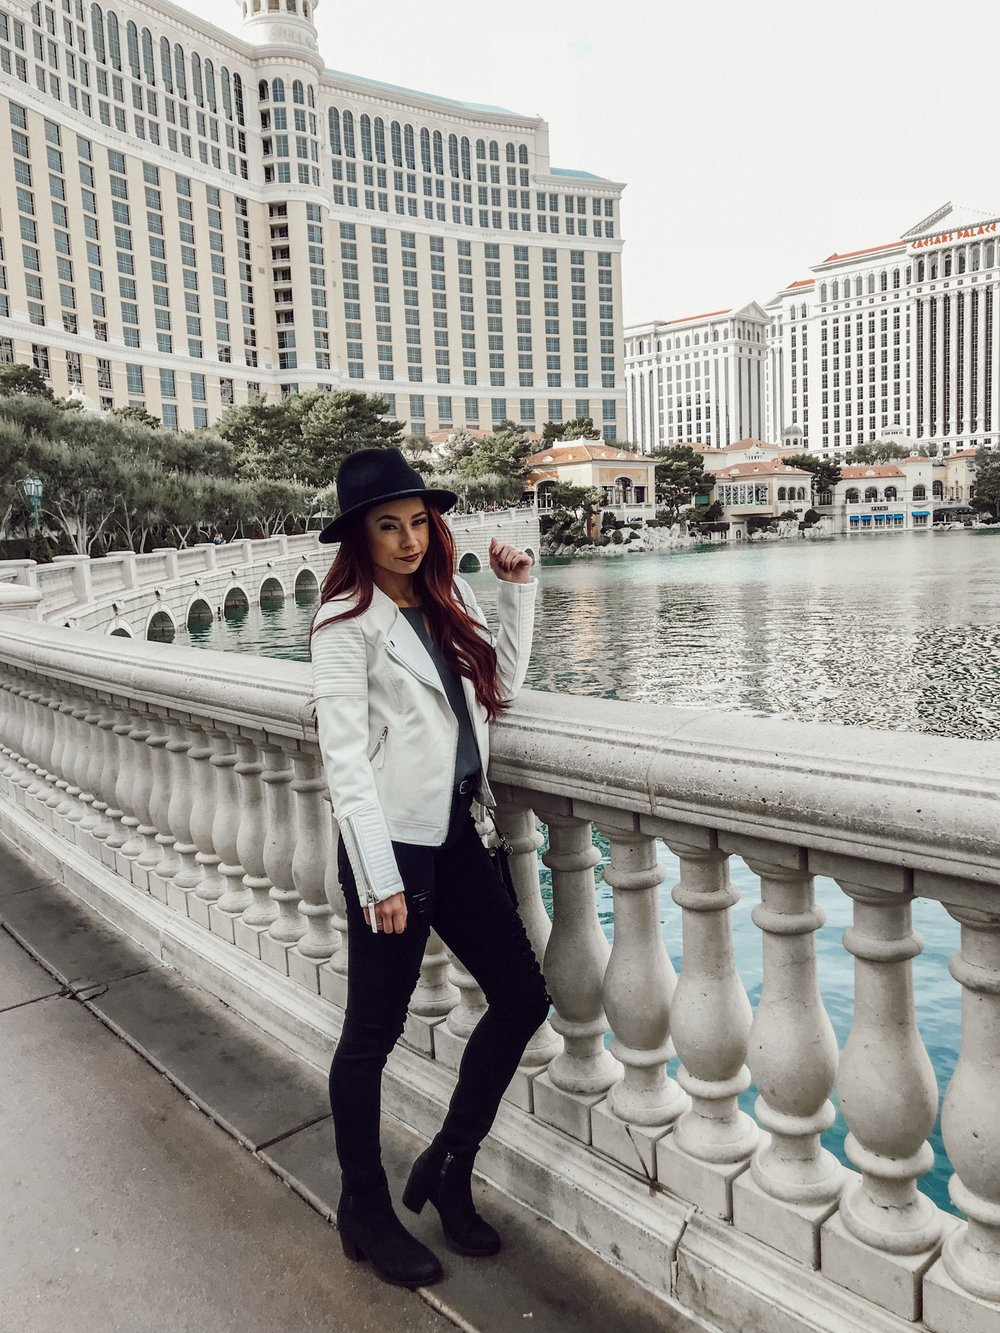 Las Vegas Travel Guide by popular Indianapolis blogger Trendy in Indy